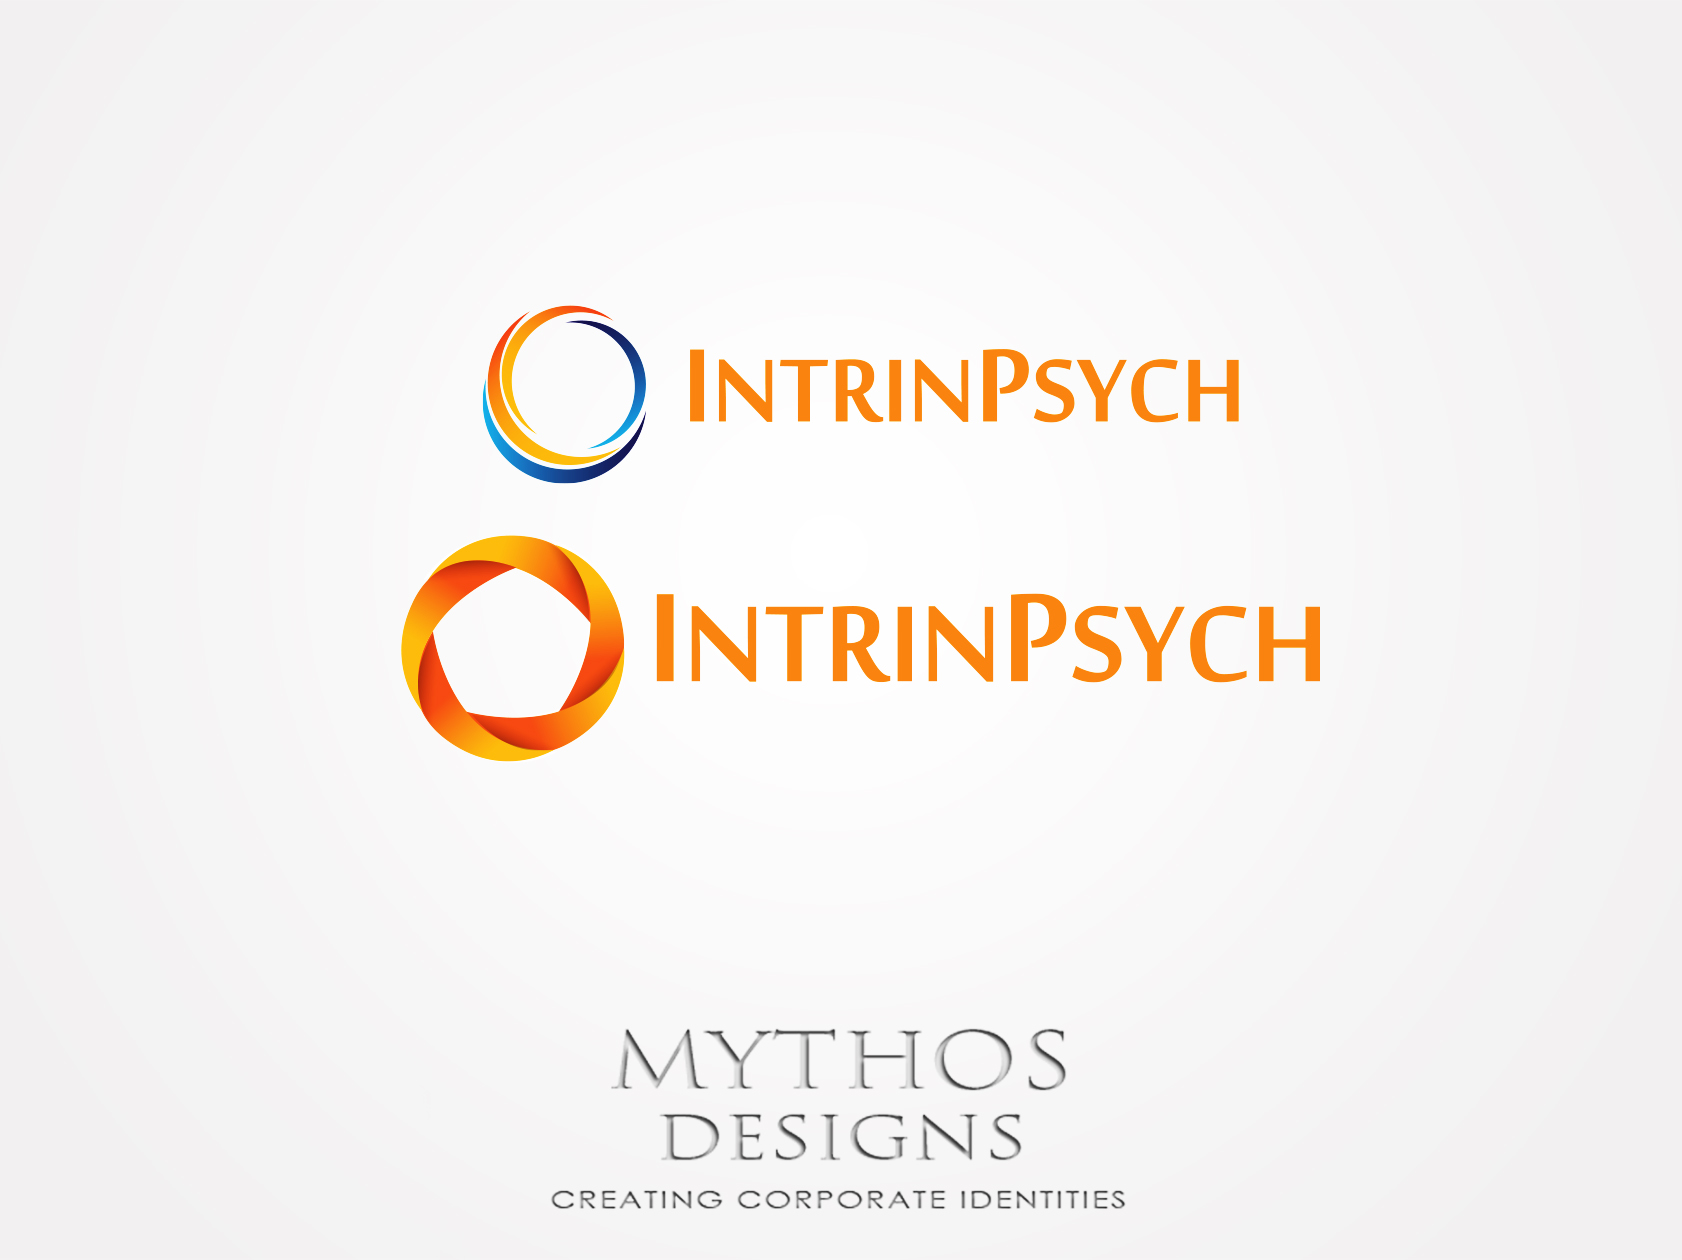 Logo Design by Mythos Designs - Entry No. 107 in the Logo Design Contest New Logo Design for IntrinPsych.